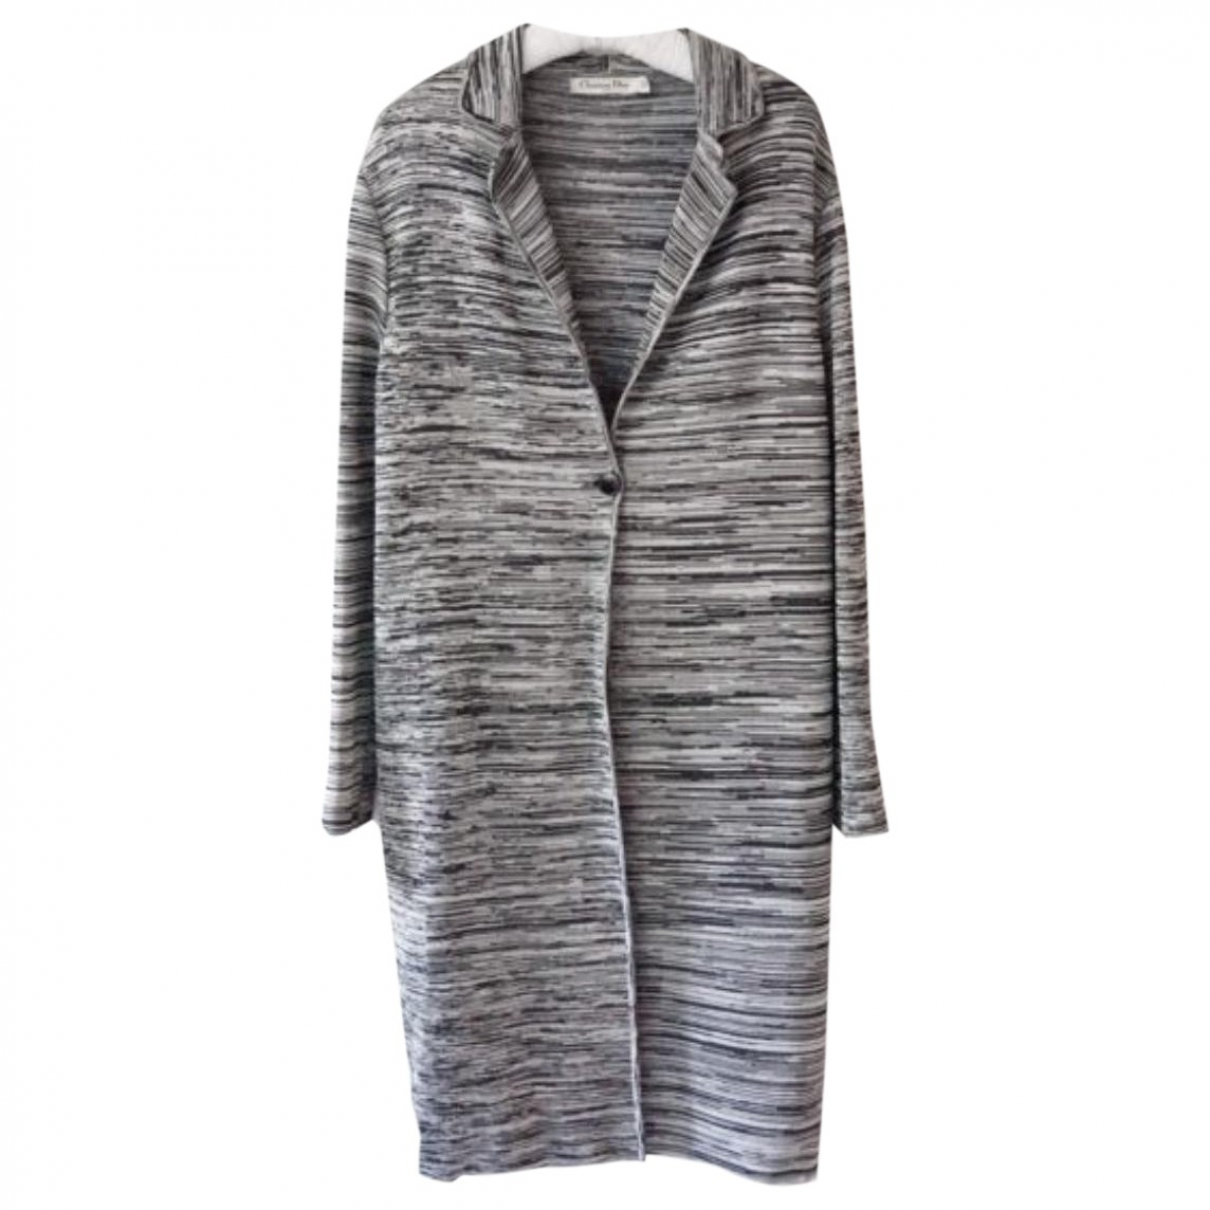 Dior N Grey Knitwear for Women 42 FR